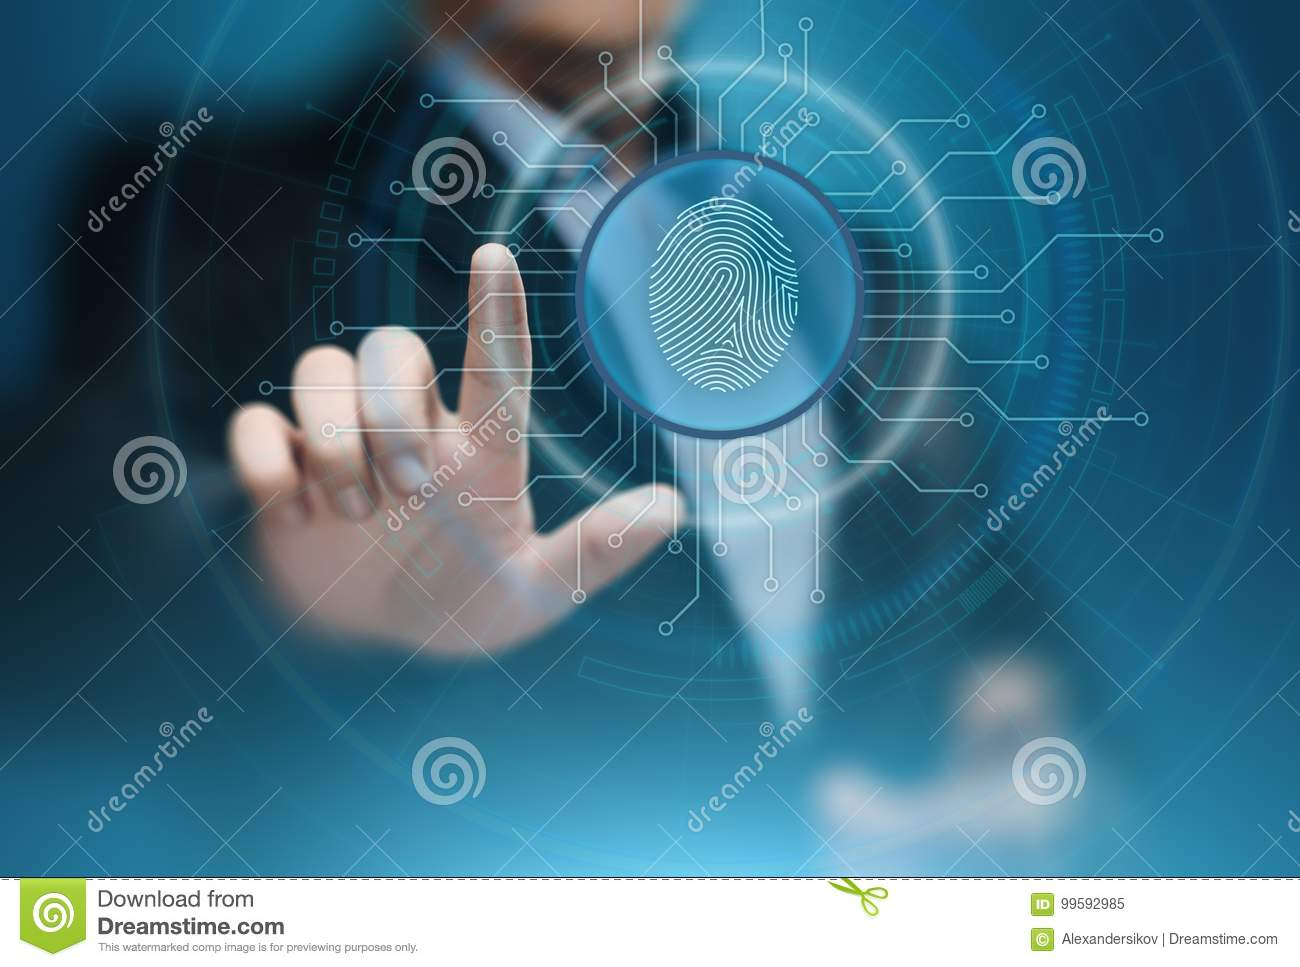 Fingerprint scan provides security access with biometrics identification. Business Technology Safety Internet Concept